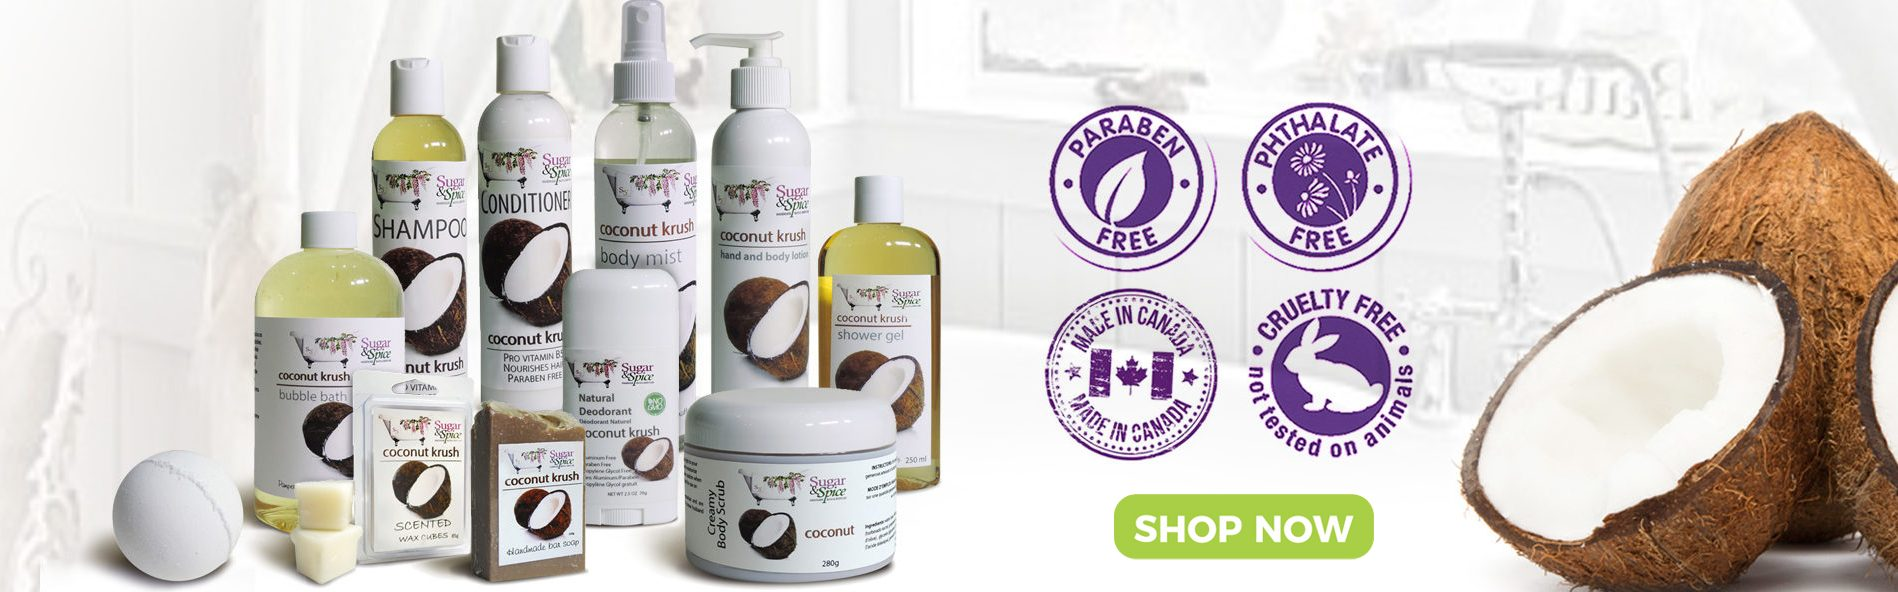 Sugar and Spice Bath and Body Care Coconut Natural Products made in Canada Maple Ridge BC Banner